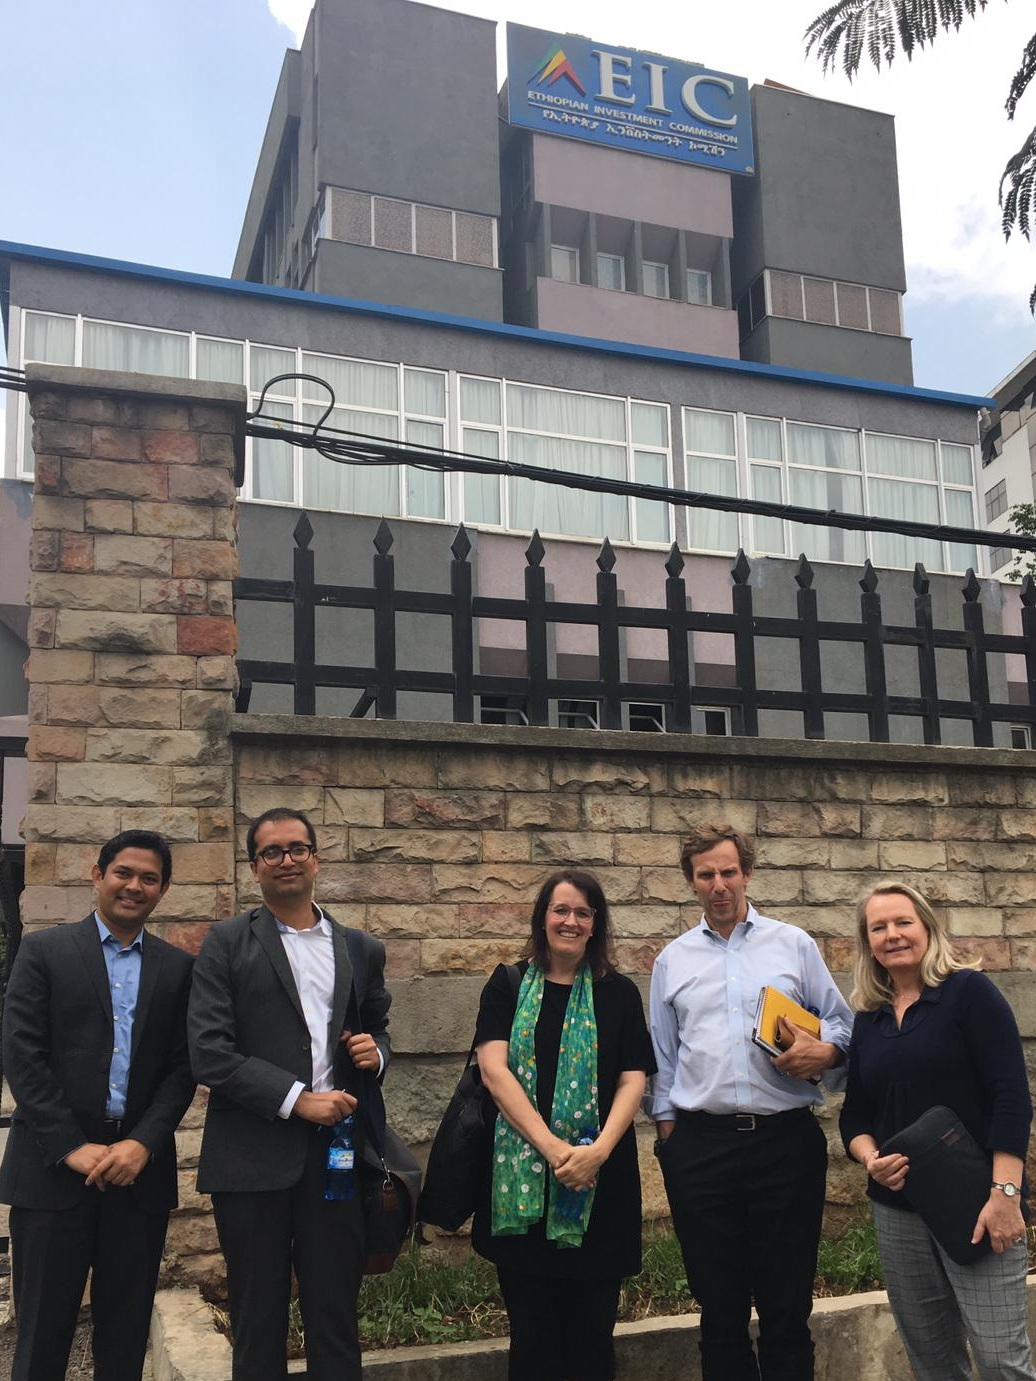 Predoctoral fellows Easwaran Narassimhan, Rishikesh Bhandary, Professor Kelly Sims Gallagher, Mike Northrup, and CIERP Associate Director Mieke van der Wansem in front of the Ethiopian Investment Commission in Addis Ababa, Ethiopia.